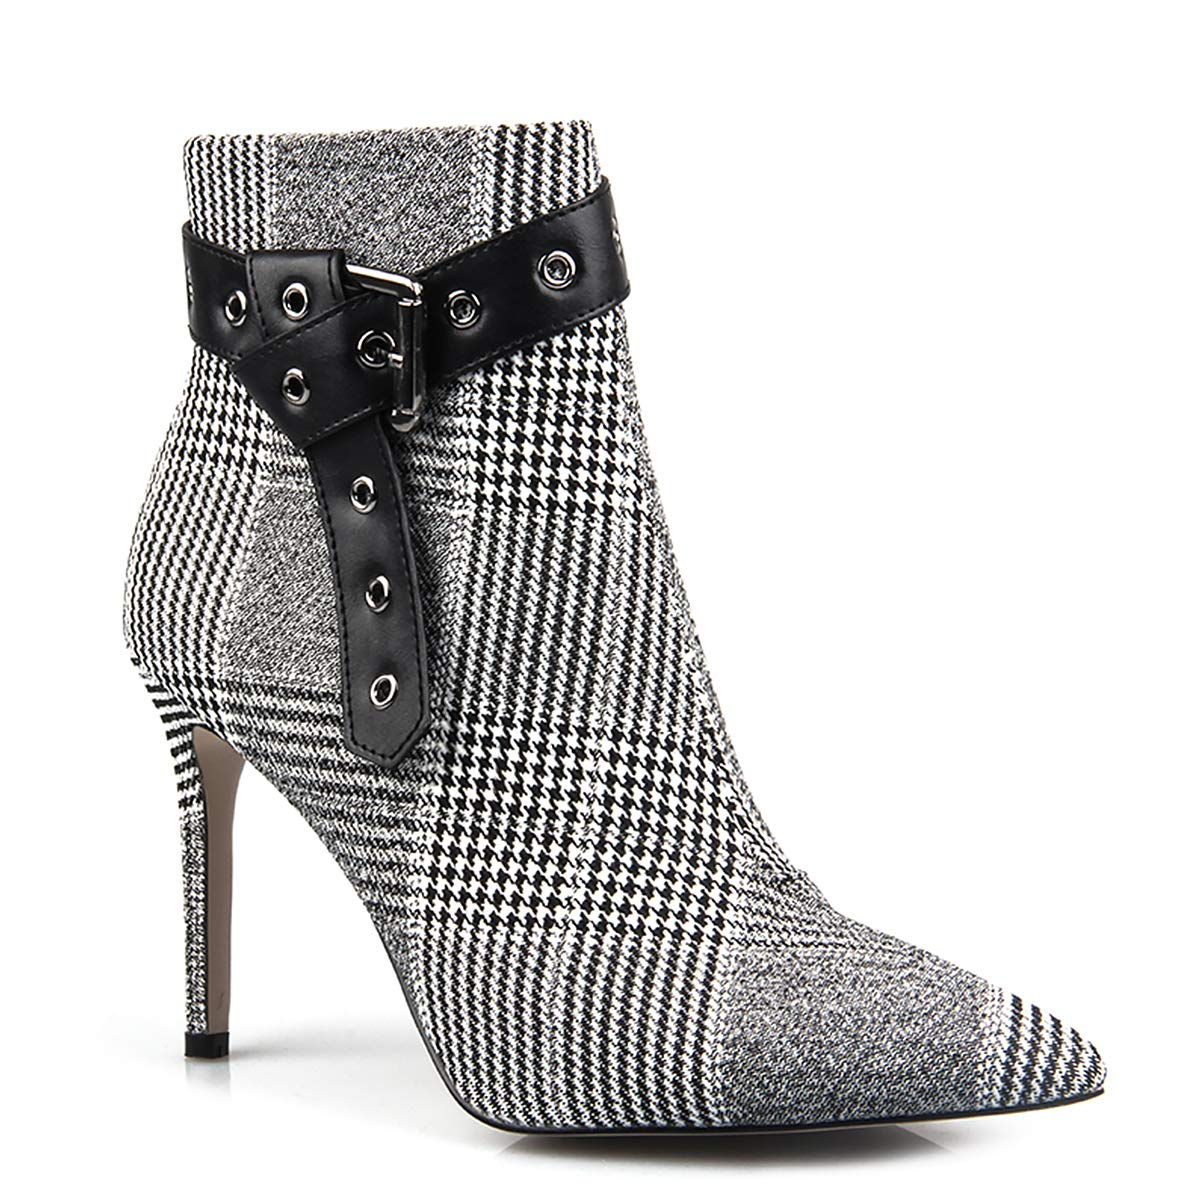 6d96d2cf05fd Amazon.com  perixir Wool Fabric Plaid Ankle Boots for Women Shoes Pointed  Toe Sexy Thin High Heels Ladies Boots Botas Mujer Bota Feminina  Shoes